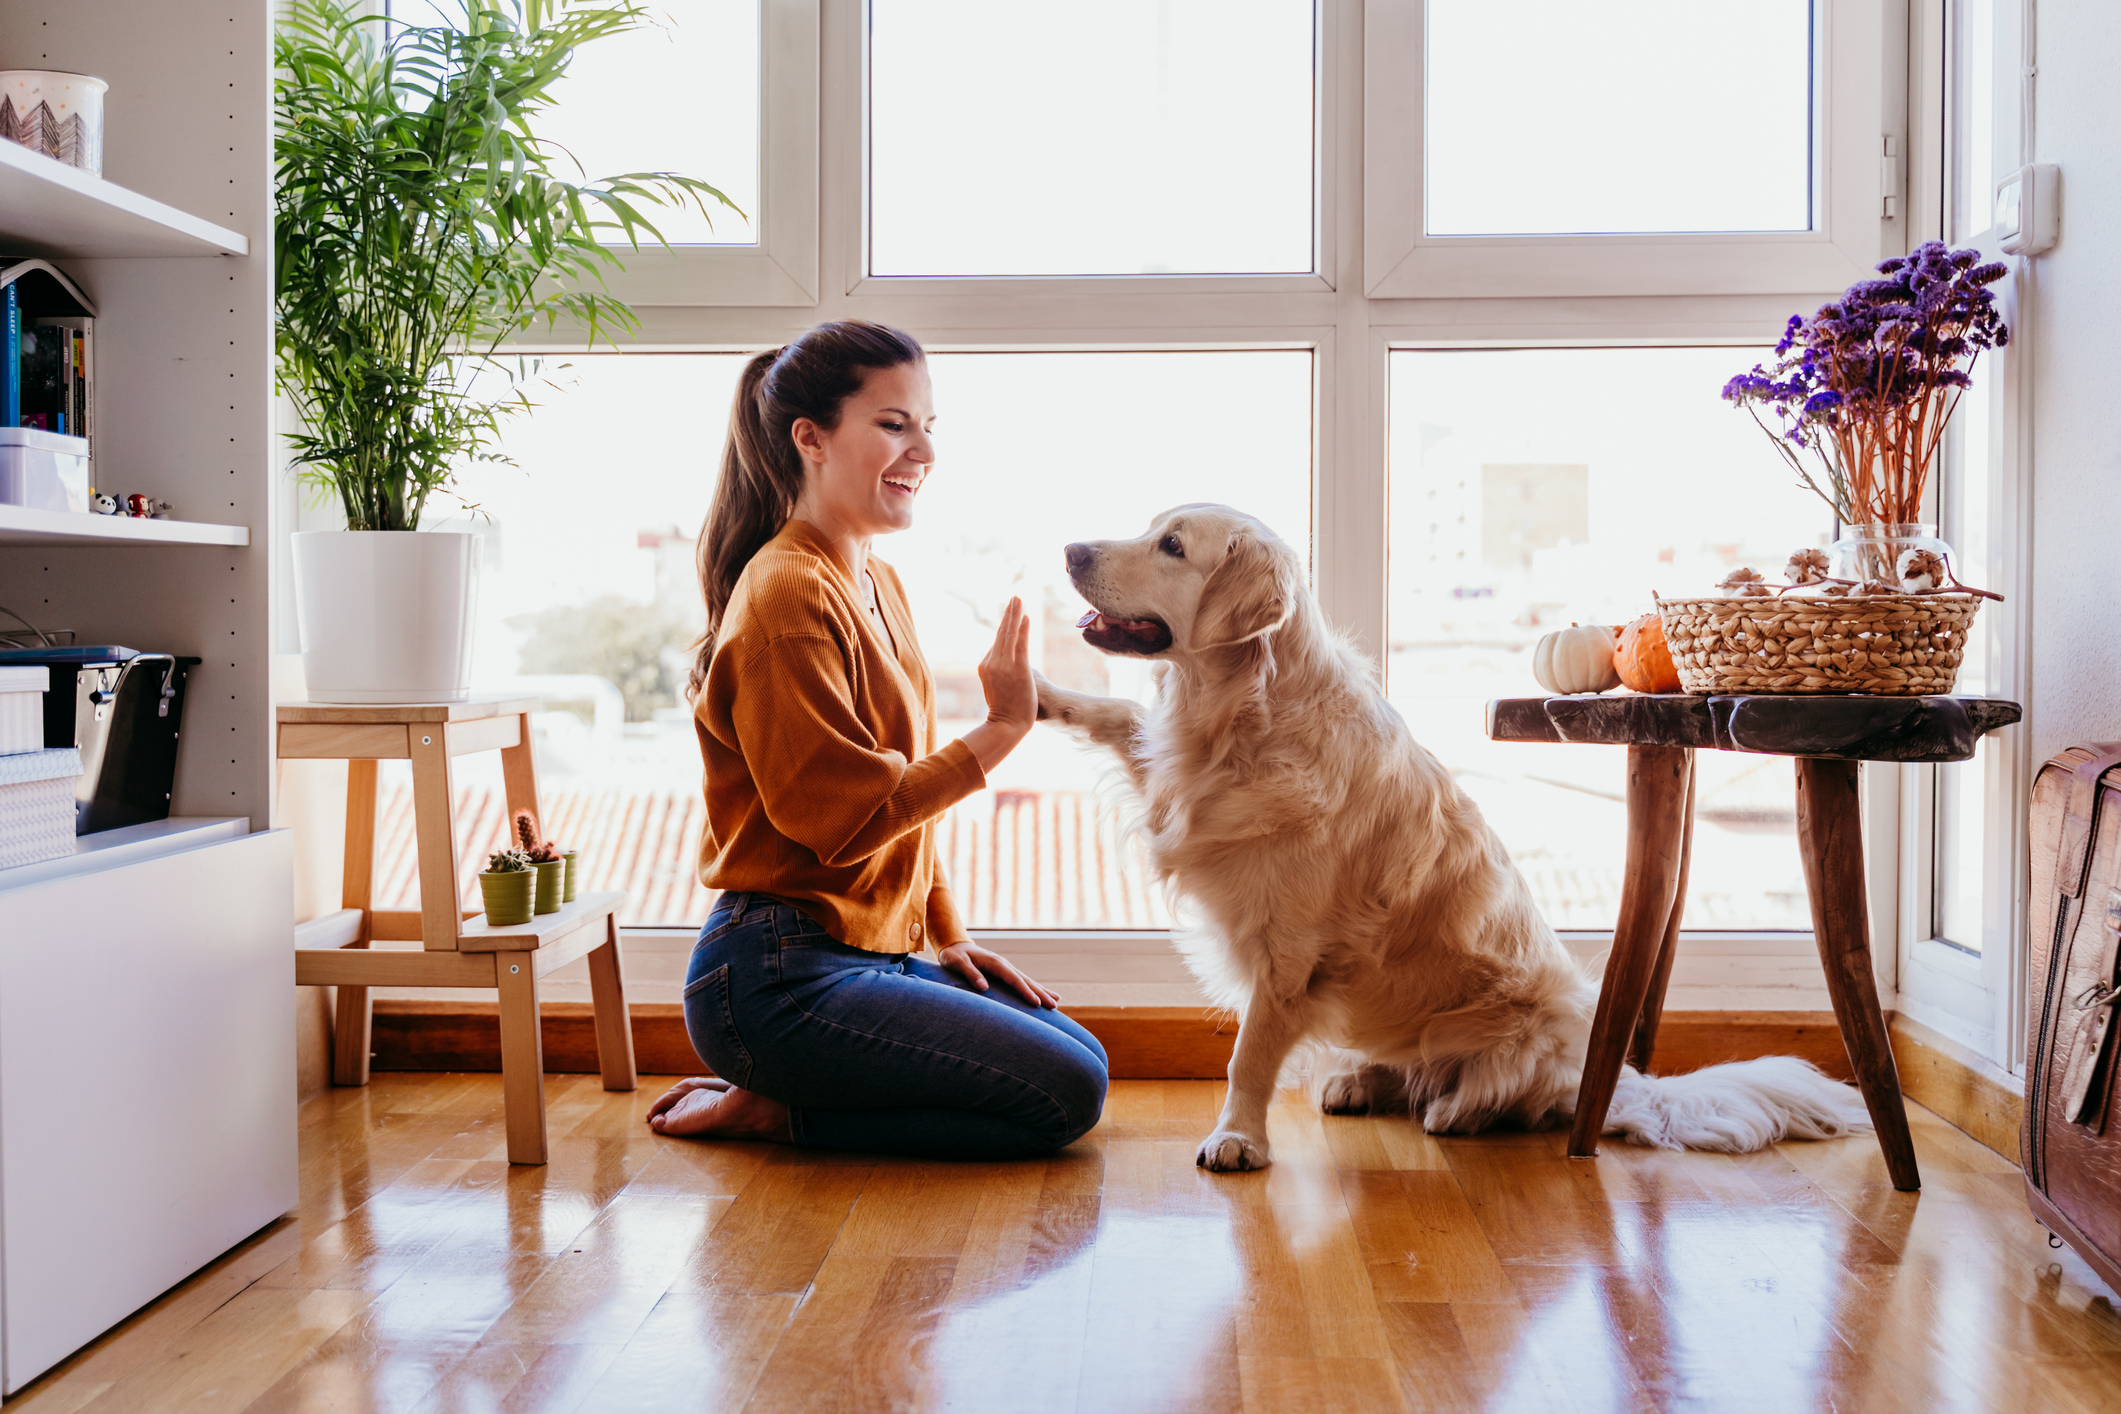 woman relaxing with her dog in a clean home, mrs clean pittsburgh, pet cleaning service near me, cleaning up pet hair, golden retriever, woman, clean house, pittsburgh pa